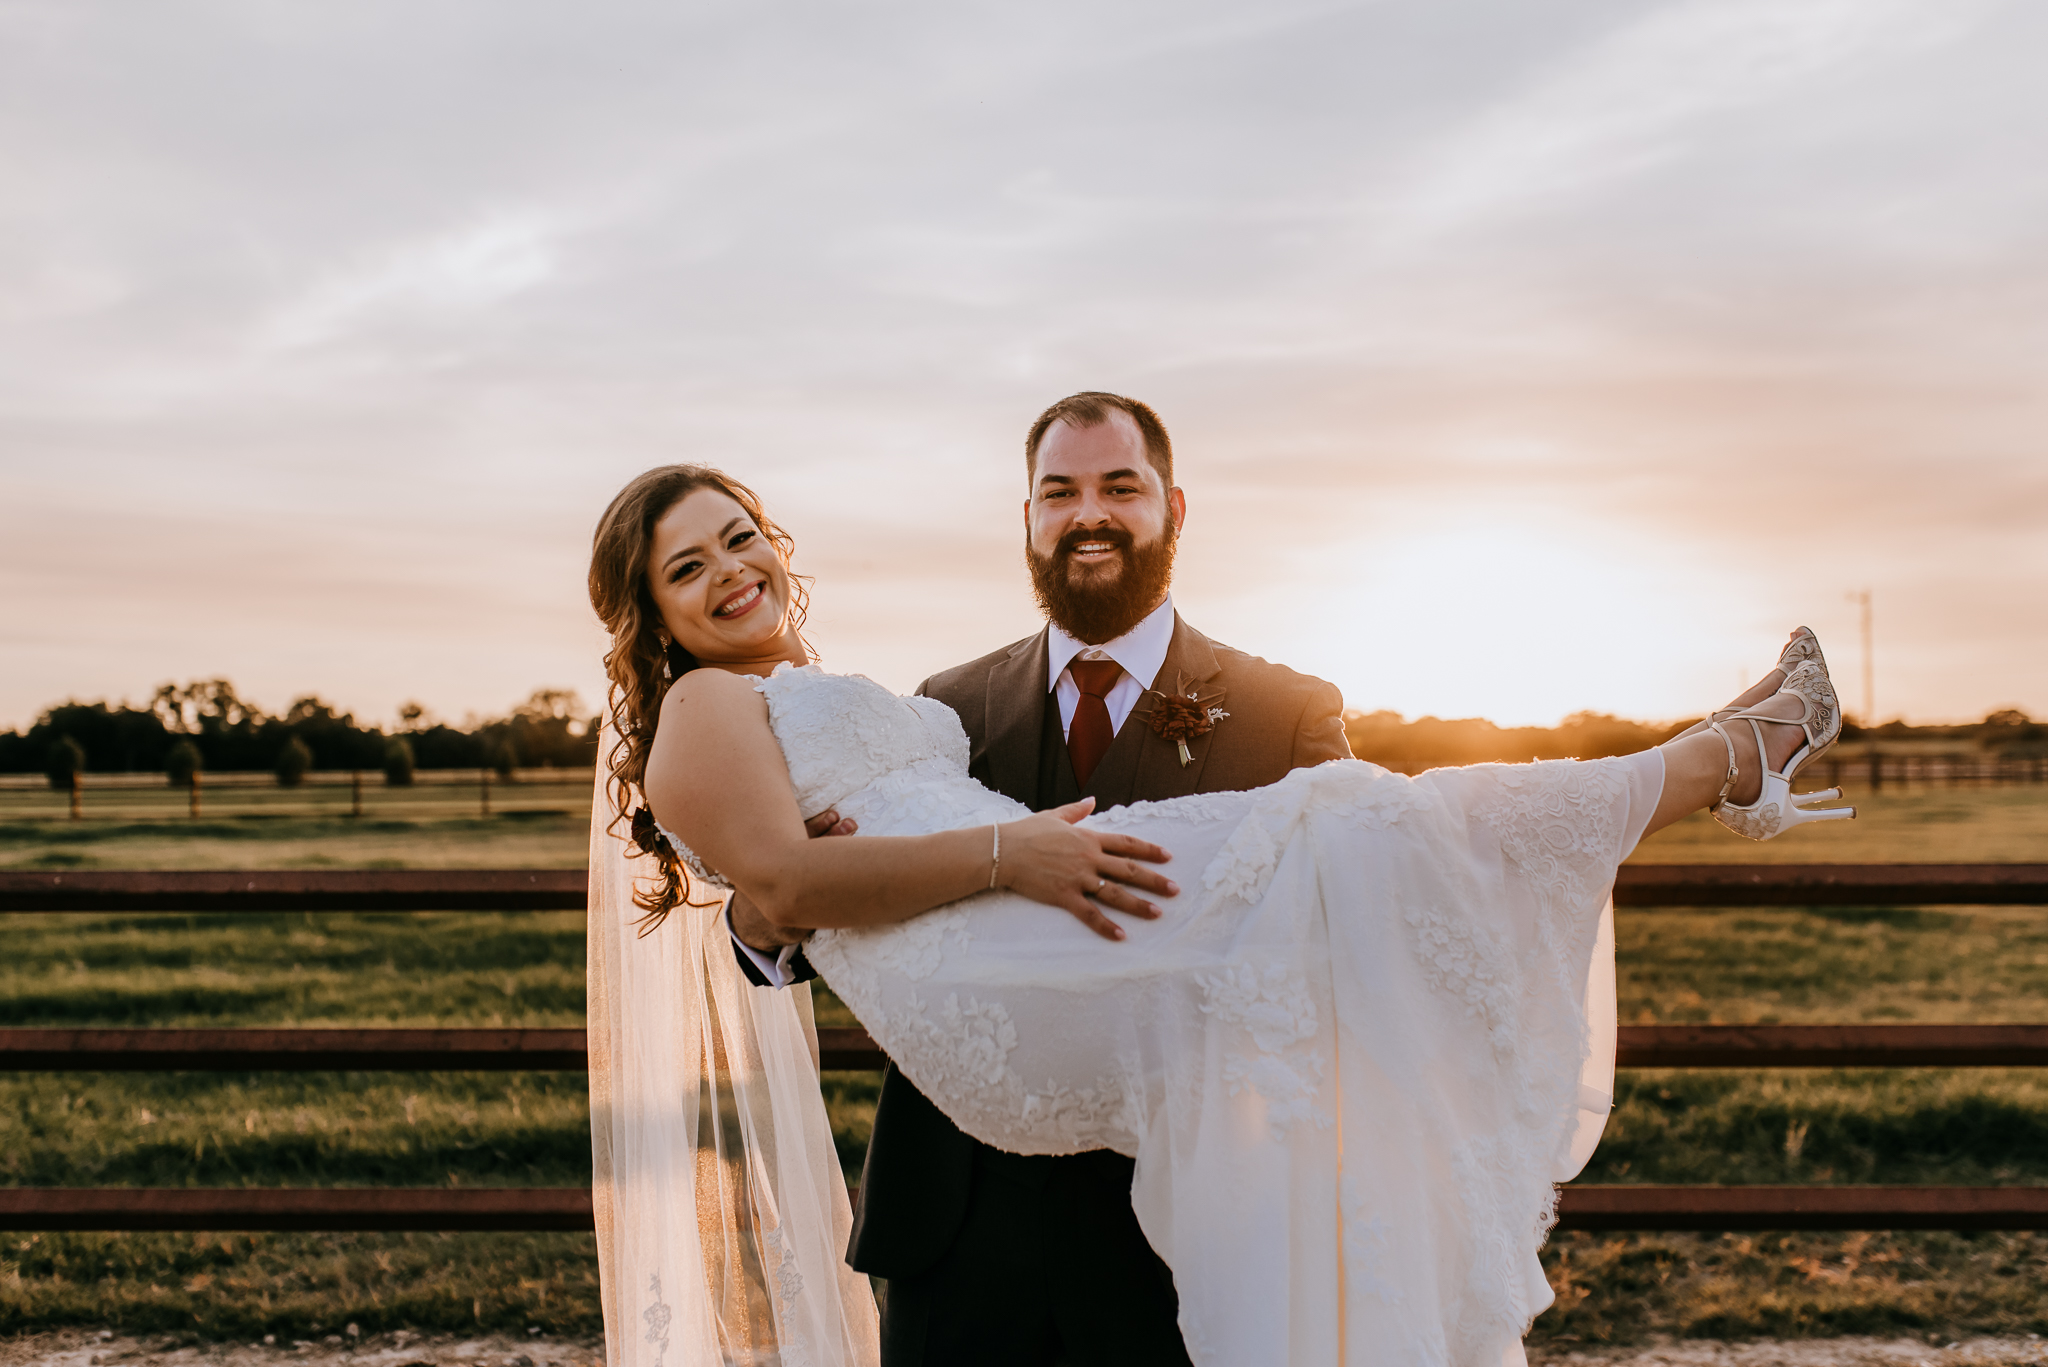 Hickman Wedding 03-10-19